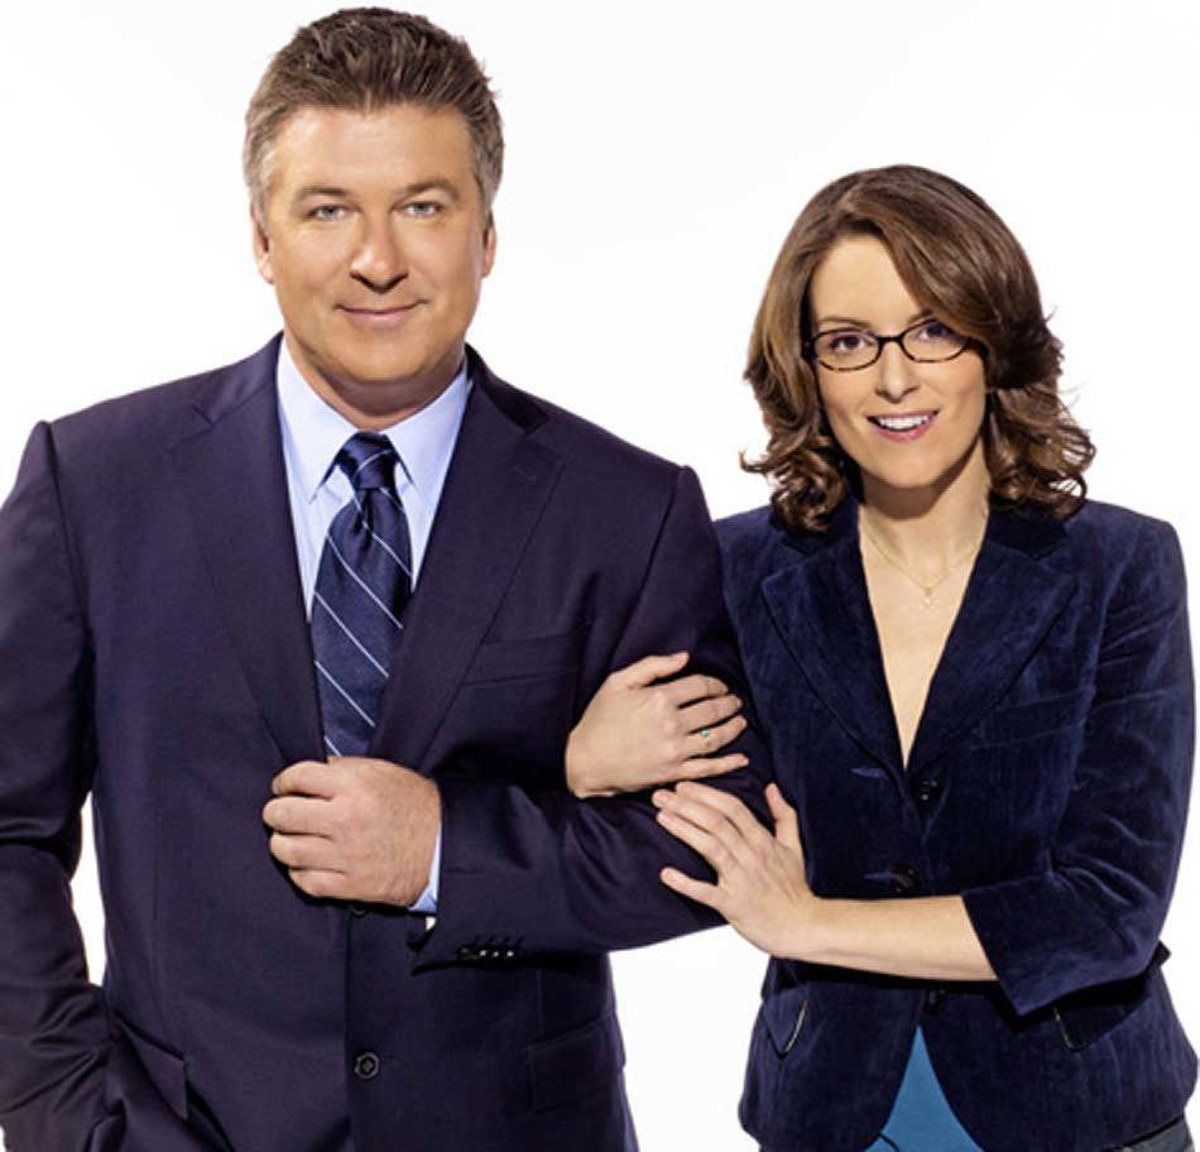 COMEDY 30 Rock NBC, CITY-TV, 8:30 p.m. ET/PT Live from New York, it's 30 Rock! TV's sharpest comedy series goes live again with a new episode, so hopefully everybody has learned their lines. The storyline finds harried Liz Lemon (Tina Fey) and her boss Jack (Alec Baldwin) coming to the realization that their lives would be a whole lot easier if they pre-taped their network TV show each week. The only roadblock is the meddling network page Kenneth (Jack MacBrayer), who insists that live television is a magical experience. Tonight's live episode is scheduled to include a guest turn by Community's Donald Glover, who will play a younger version of Tracy (Tracy Morgan).